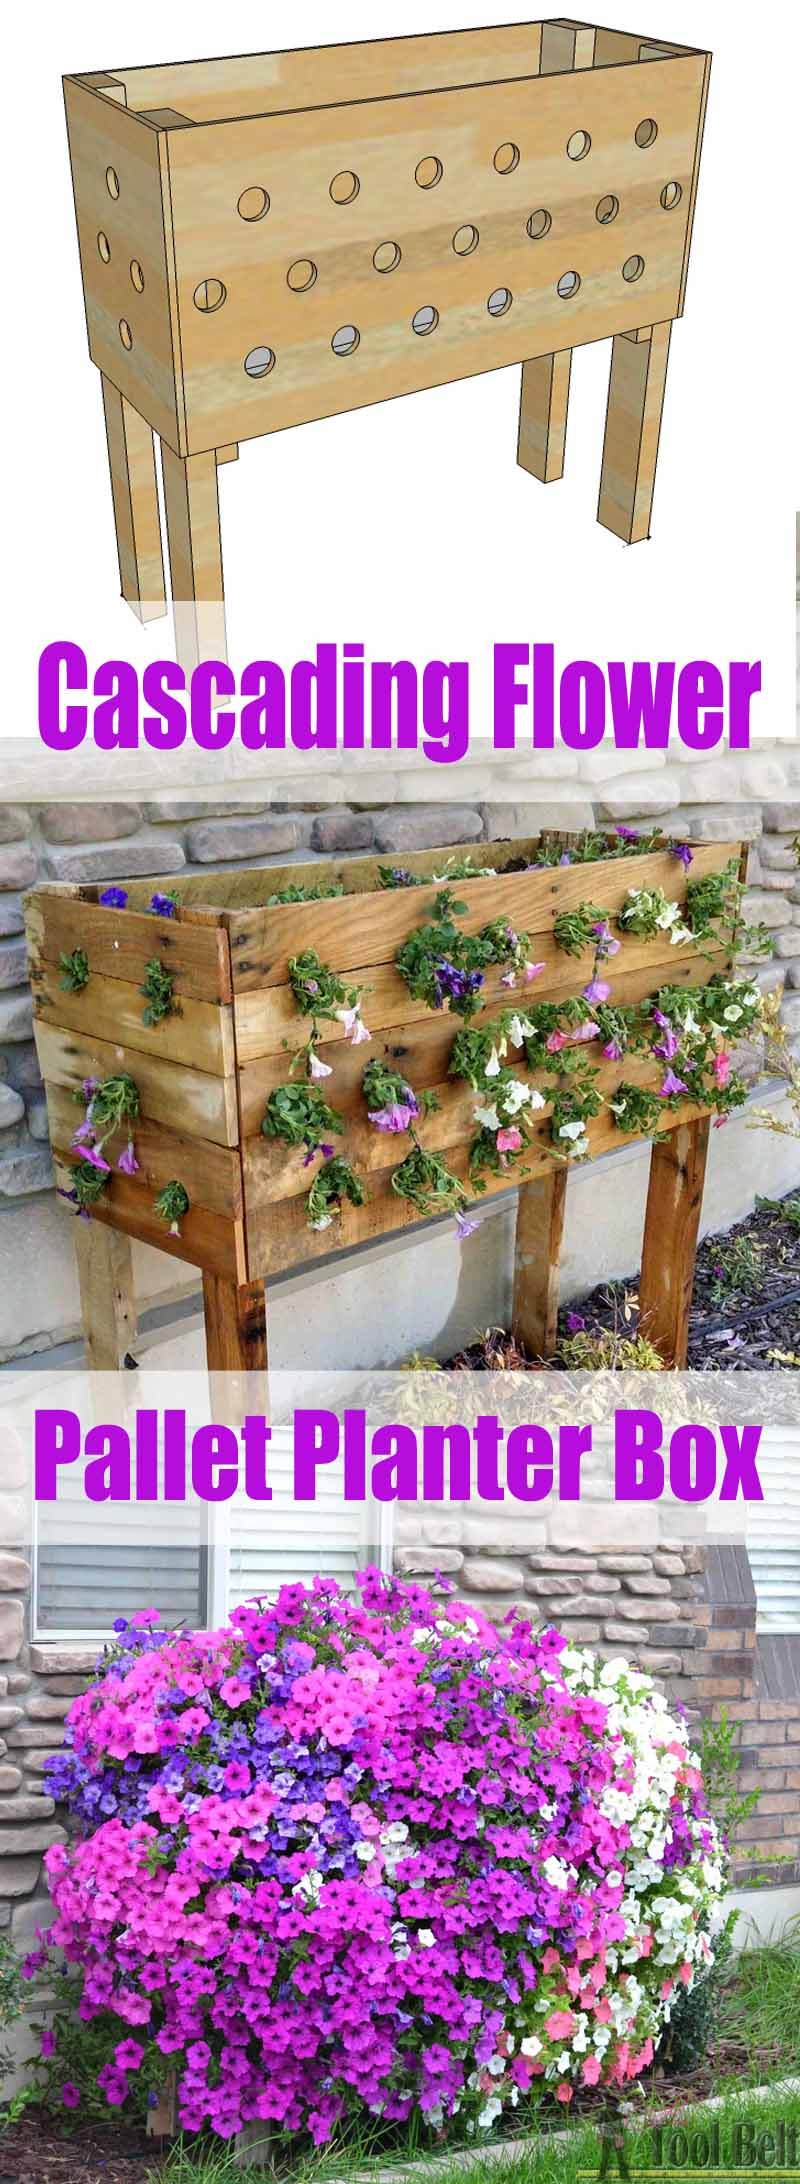 DIY Cascading Flower Pallet Planter Box.